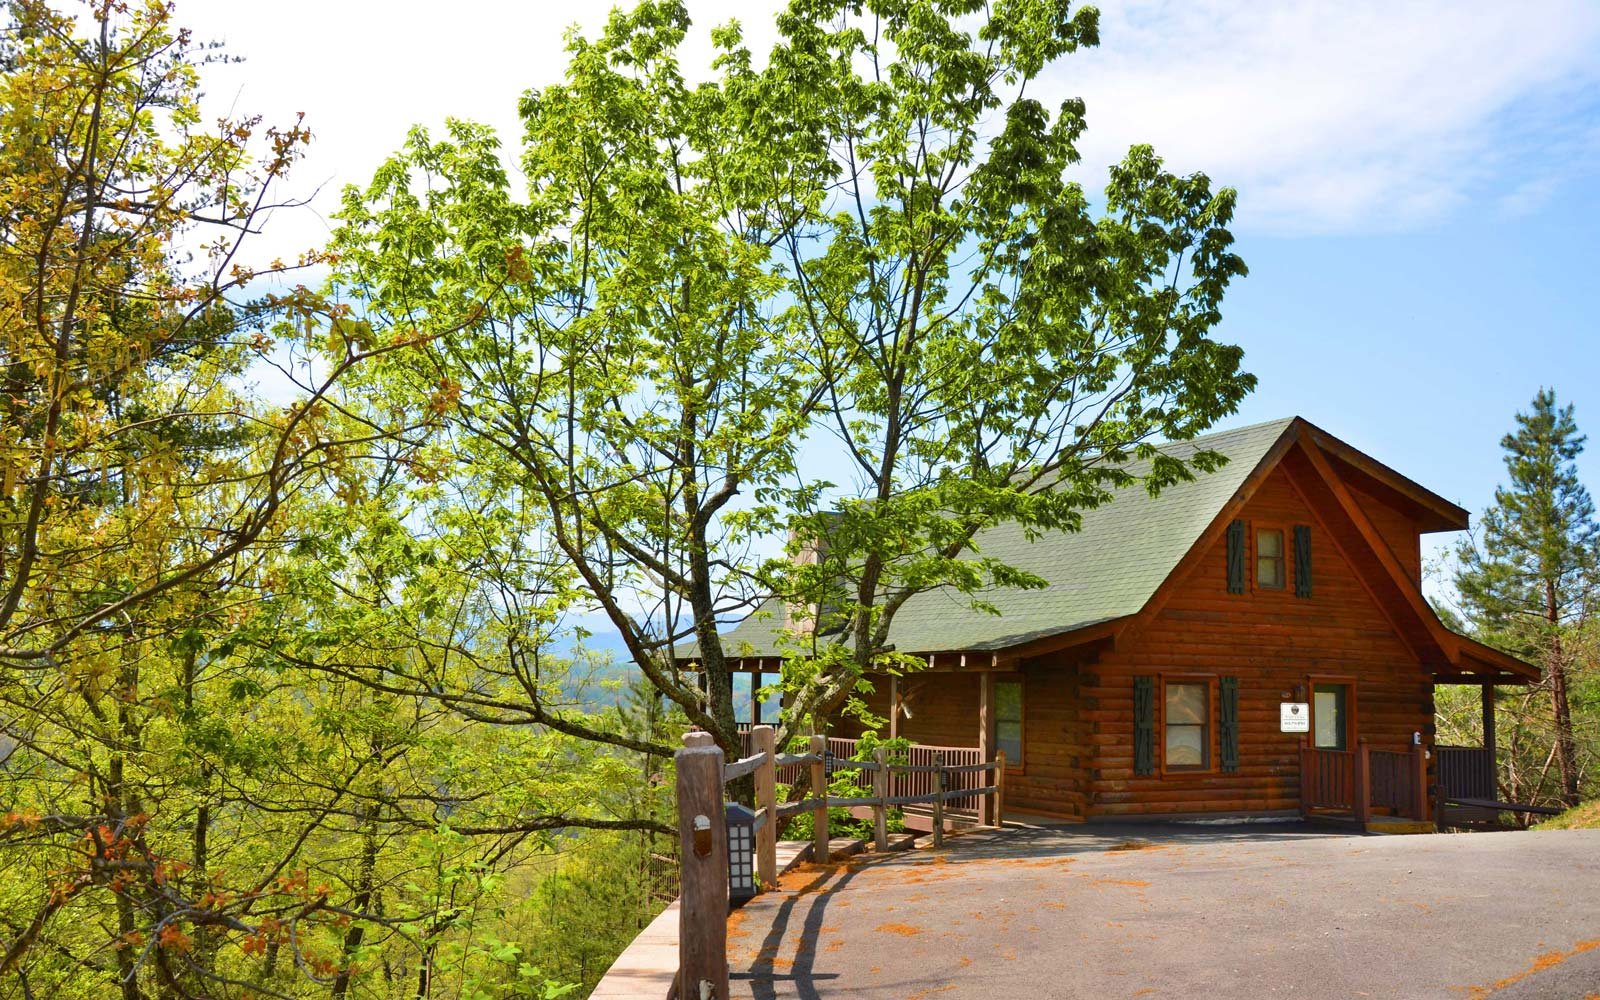 cabin jane tn bedroom gatlinburg rentals tarzan cabins x att me cheap you